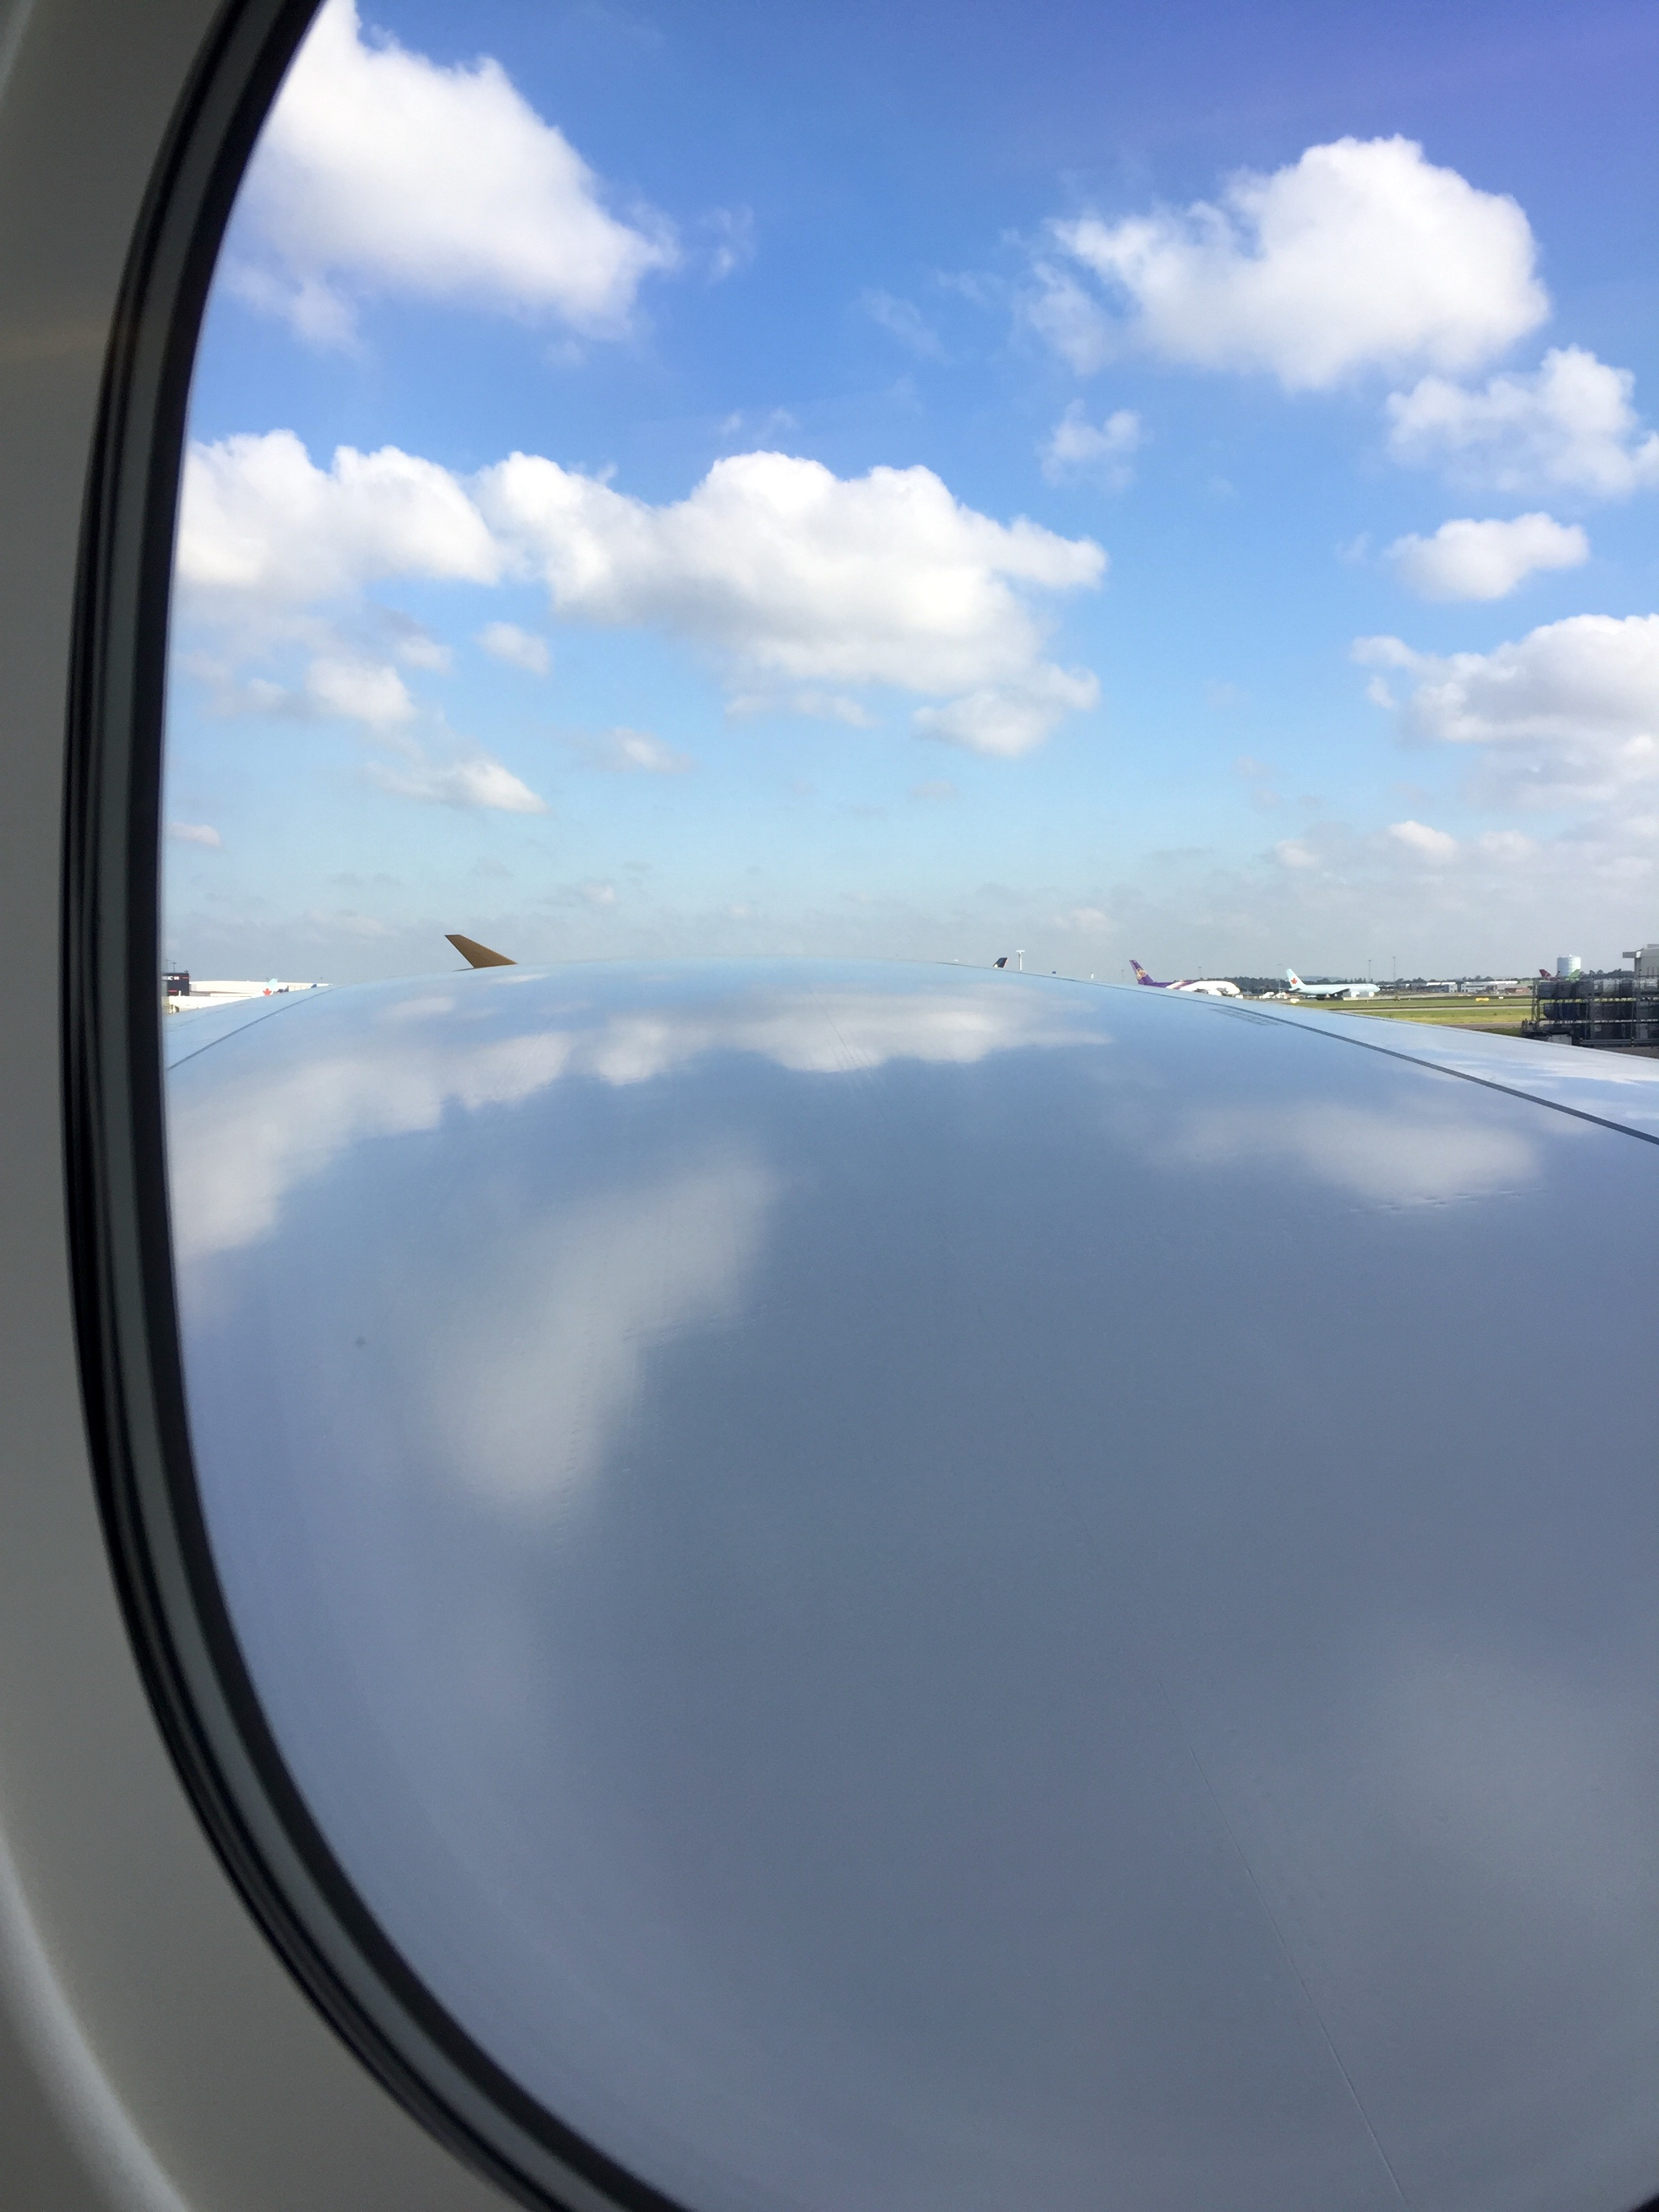 When the plane's wing is so long it's hard to see the end of it!